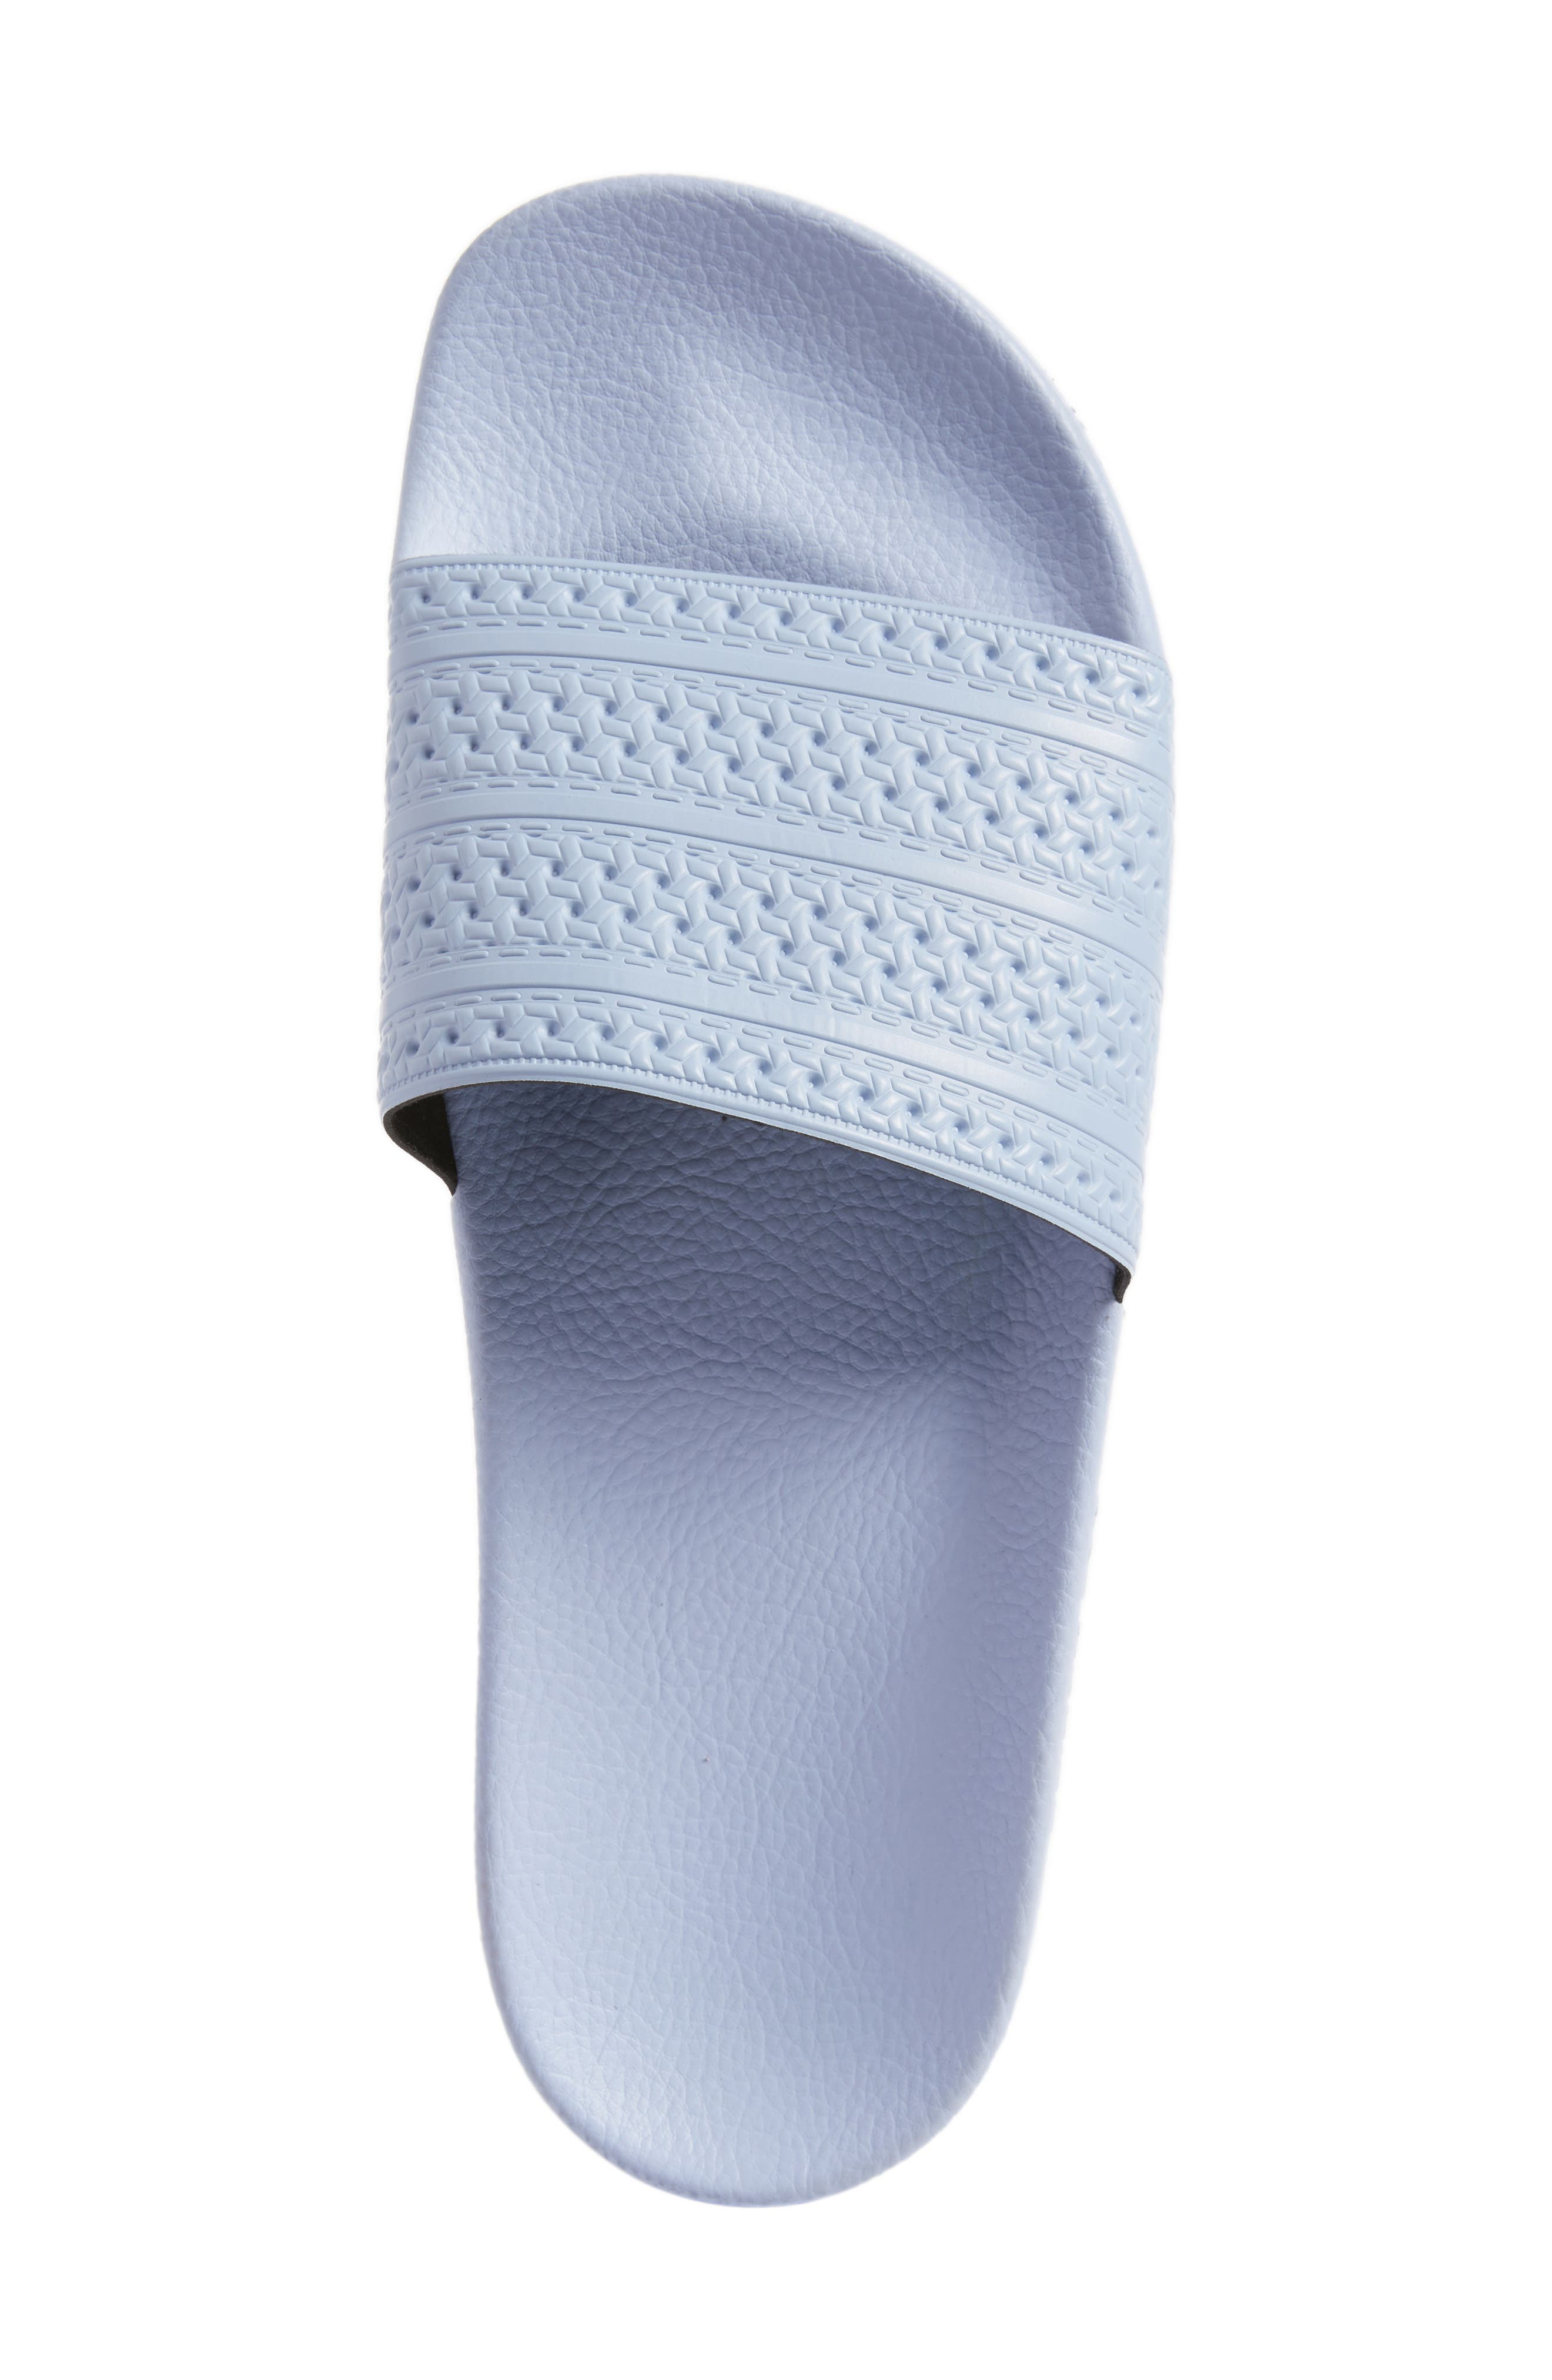 Alternate Image 2  - adidas 'Adilette' Slide Sandal (Women)